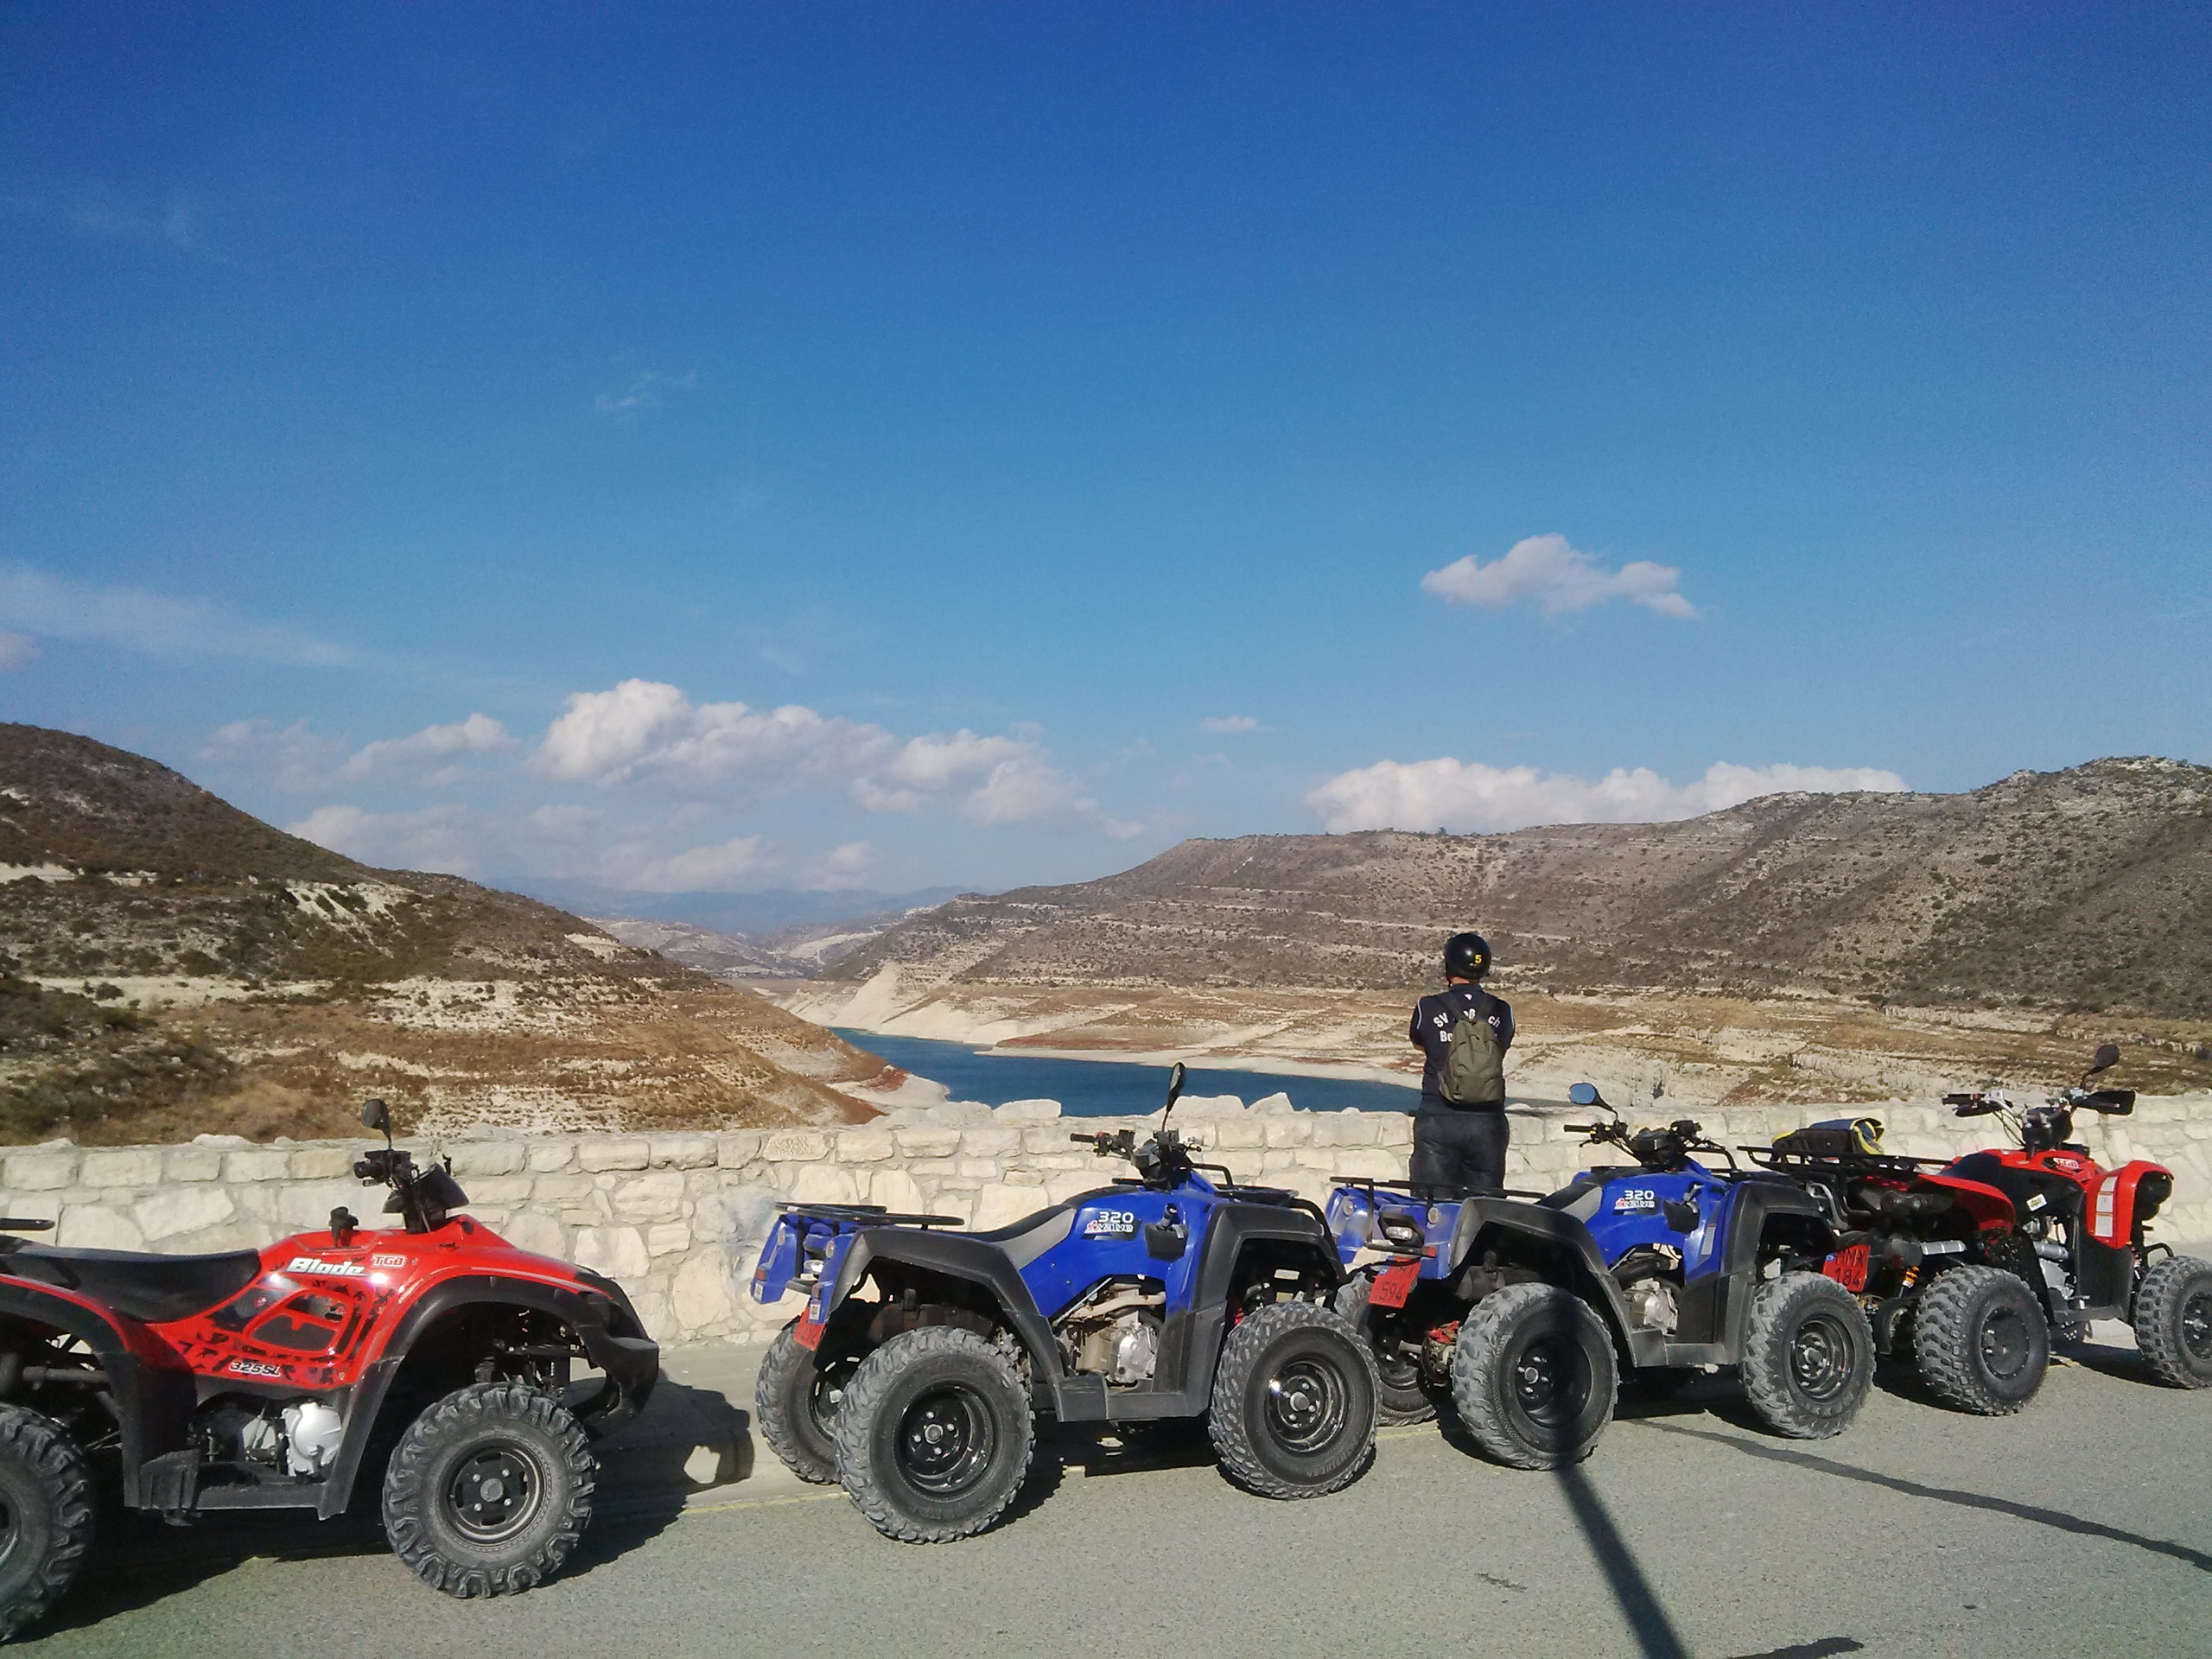 alassa dam 5hrs atlas rentals activities fun